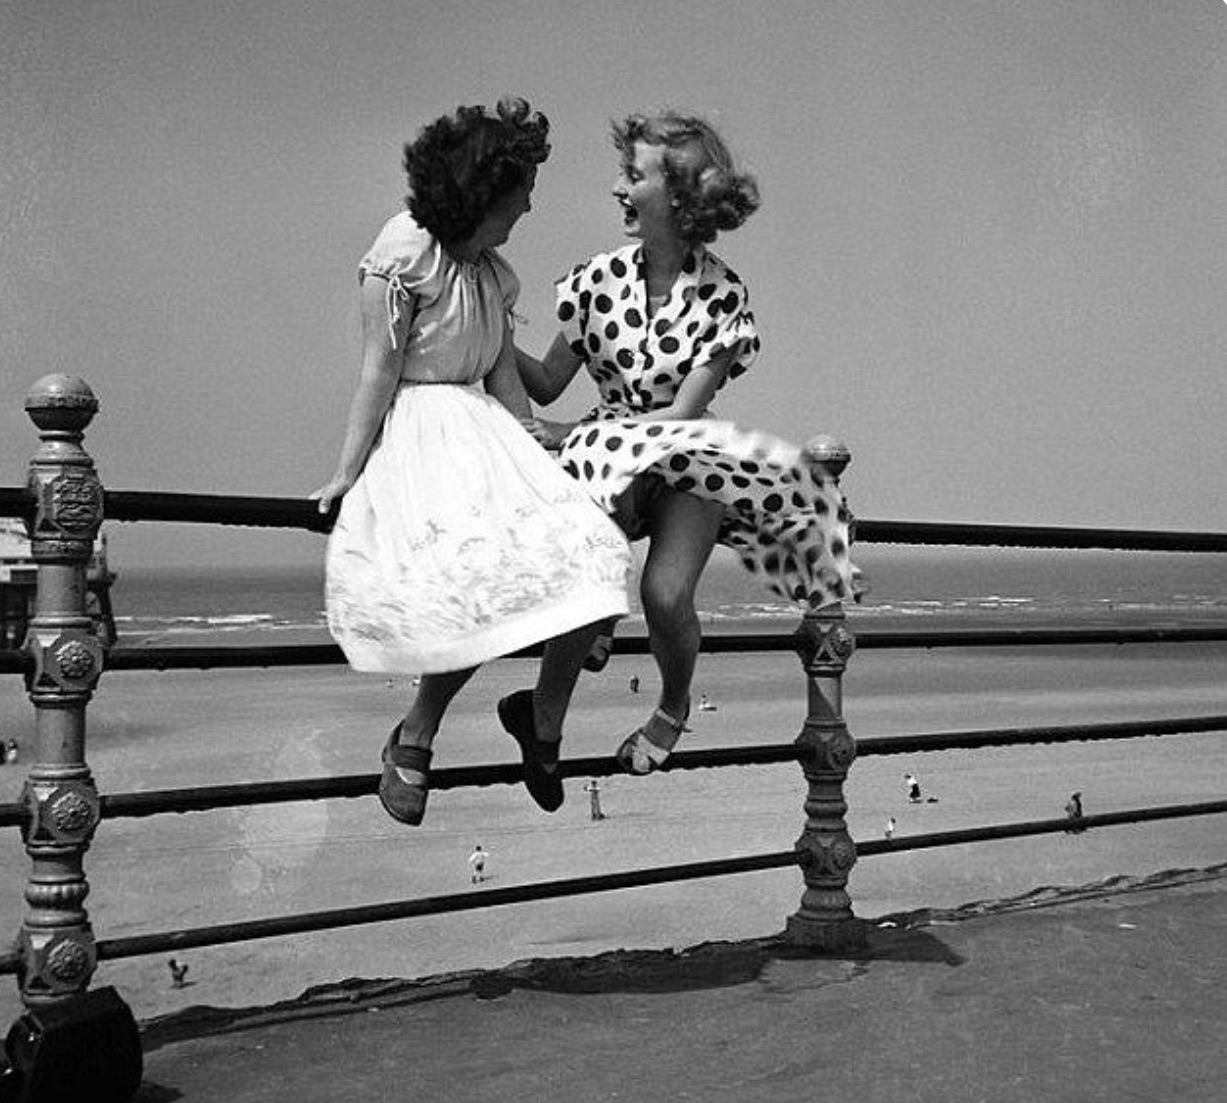 Beach Aesthetic 1950s And 50s Image 7037147 On Favim Com